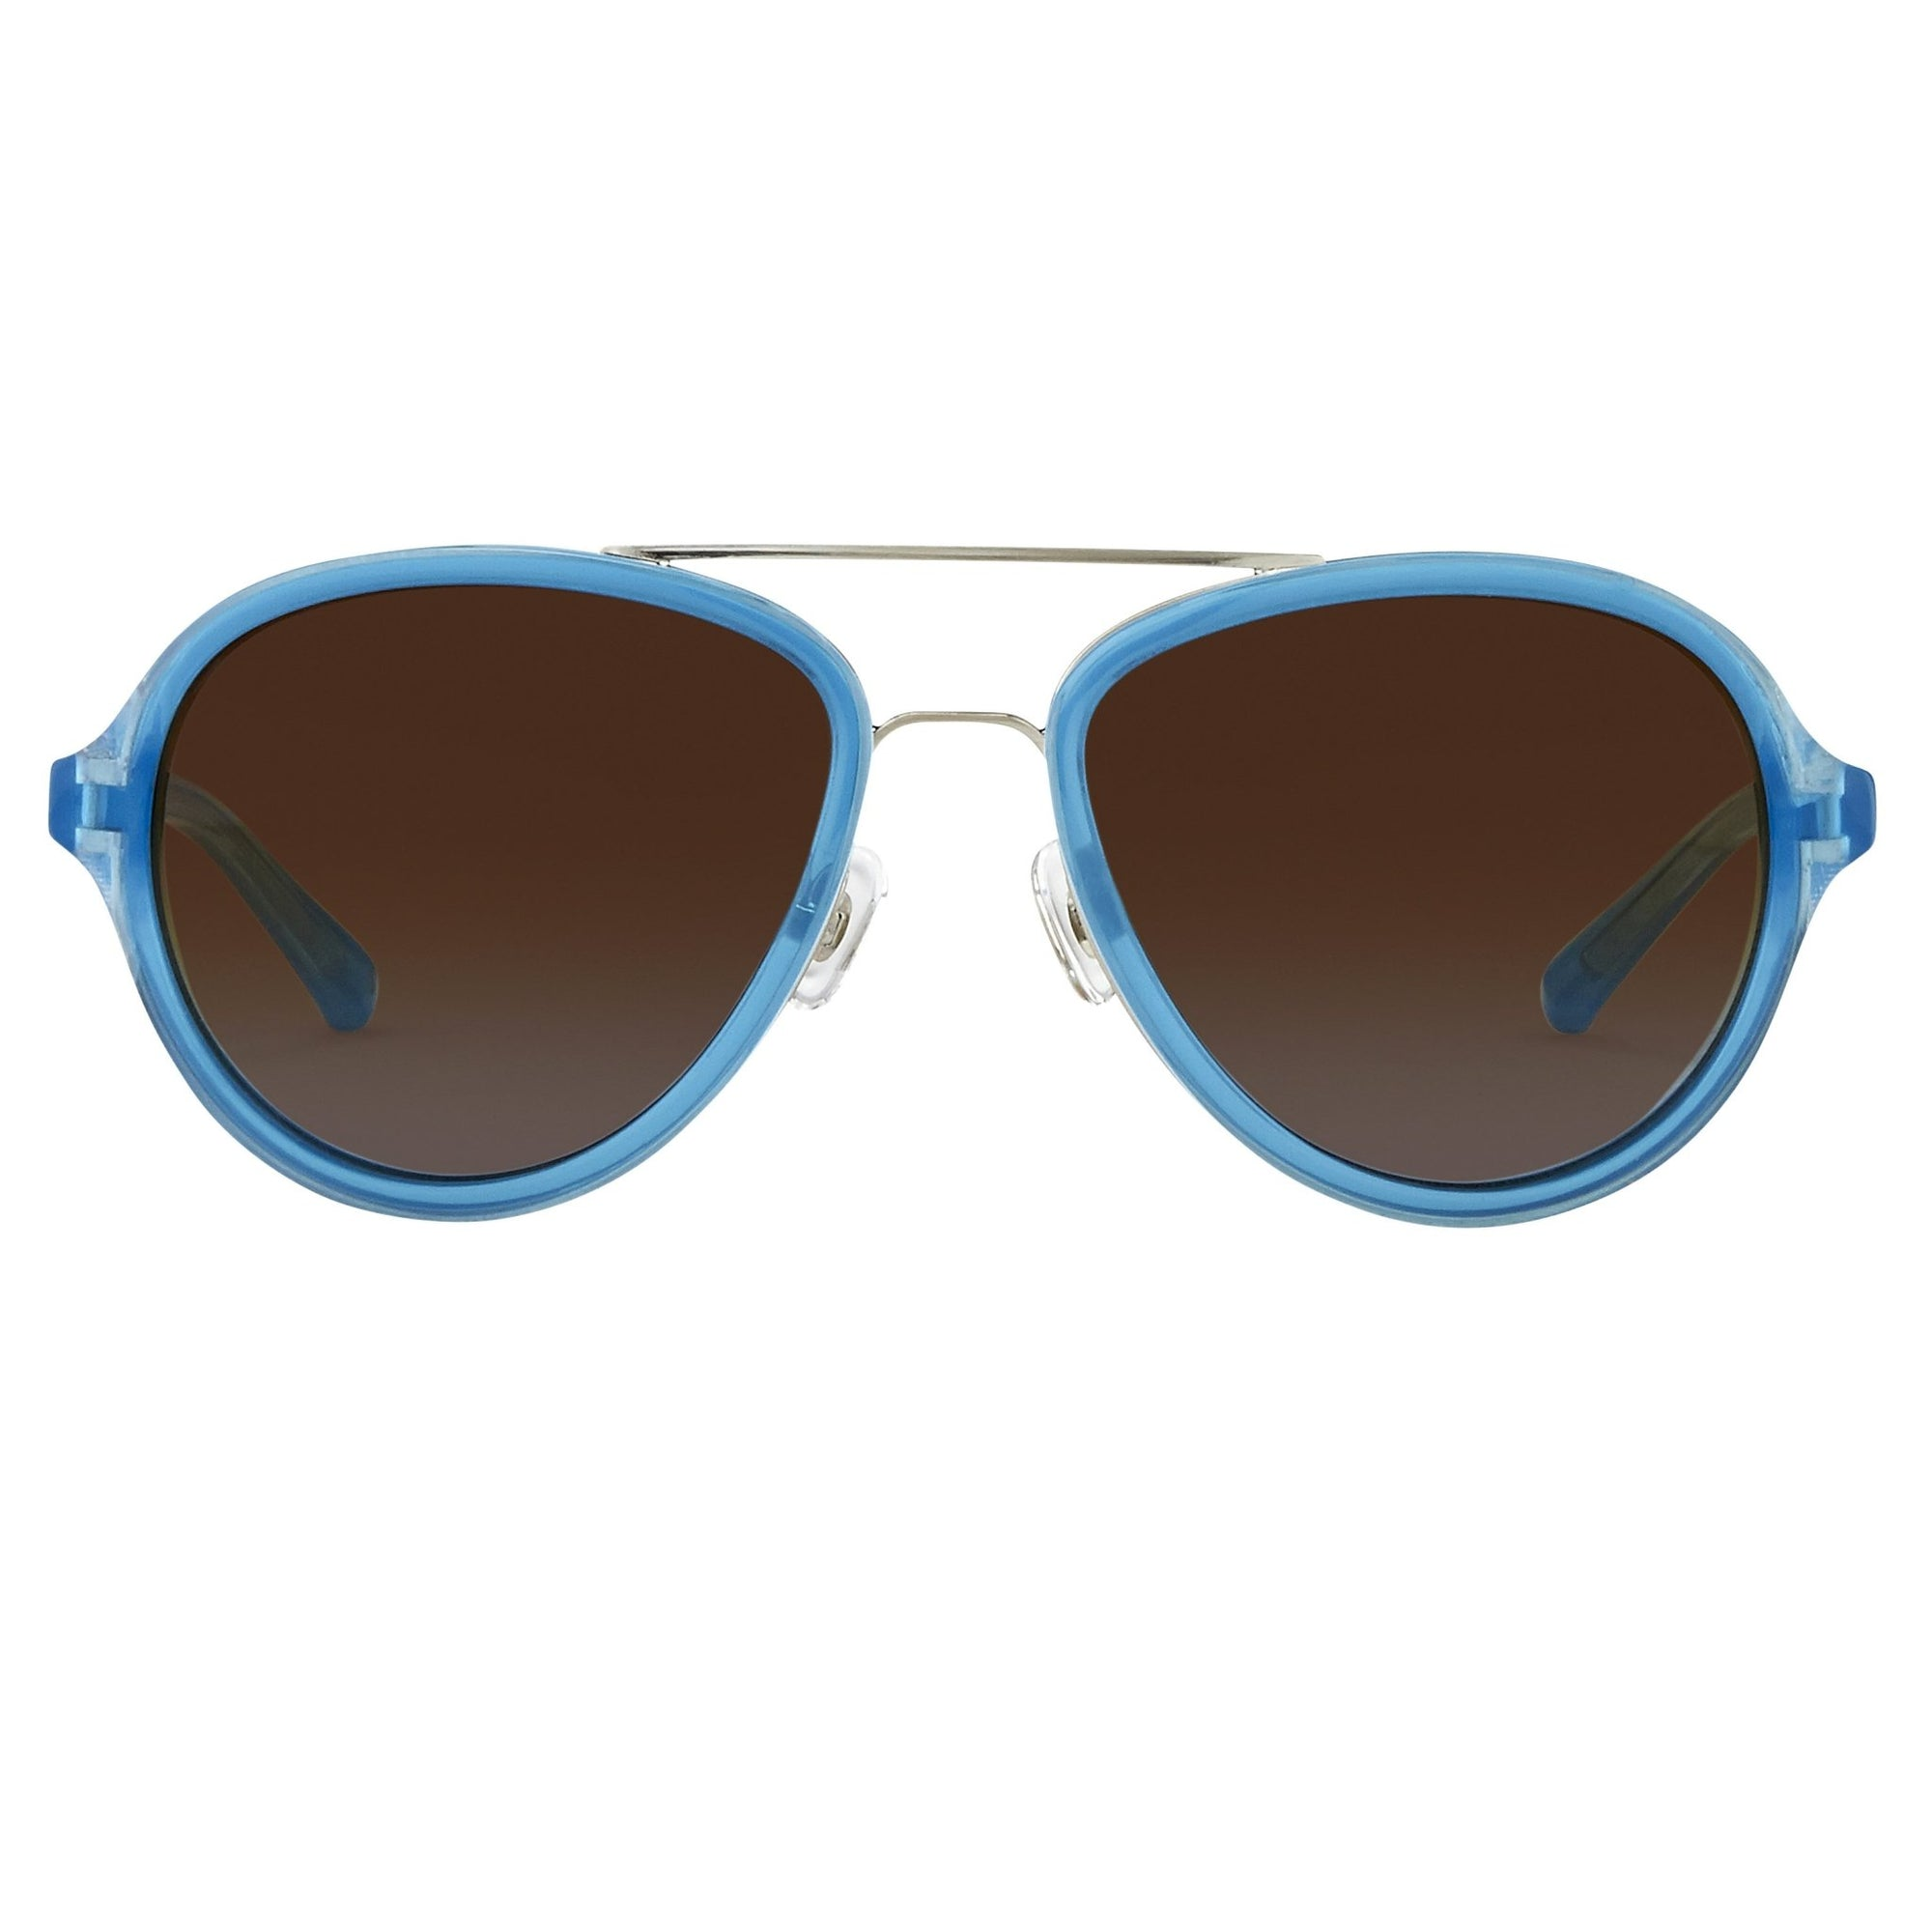 Phillip Lim Sunglasses Turquoise Brushed Silver and Brown Lenses Category 3 - PL16C27SUN - Watches & Crystals